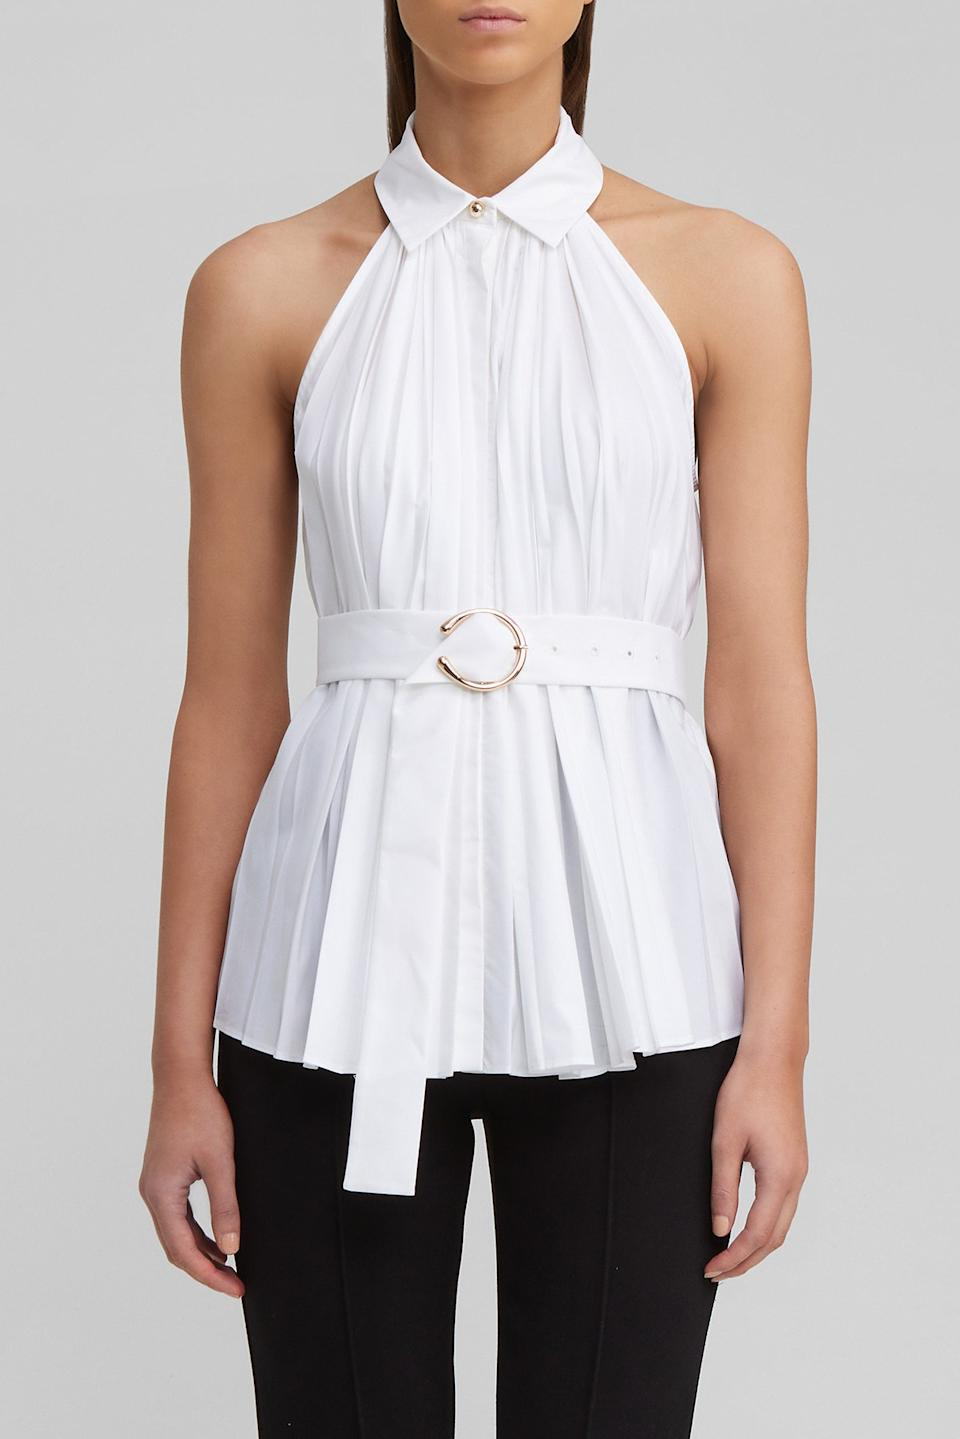 Acler 'The Prospect Top', $250. Photo: Acler.